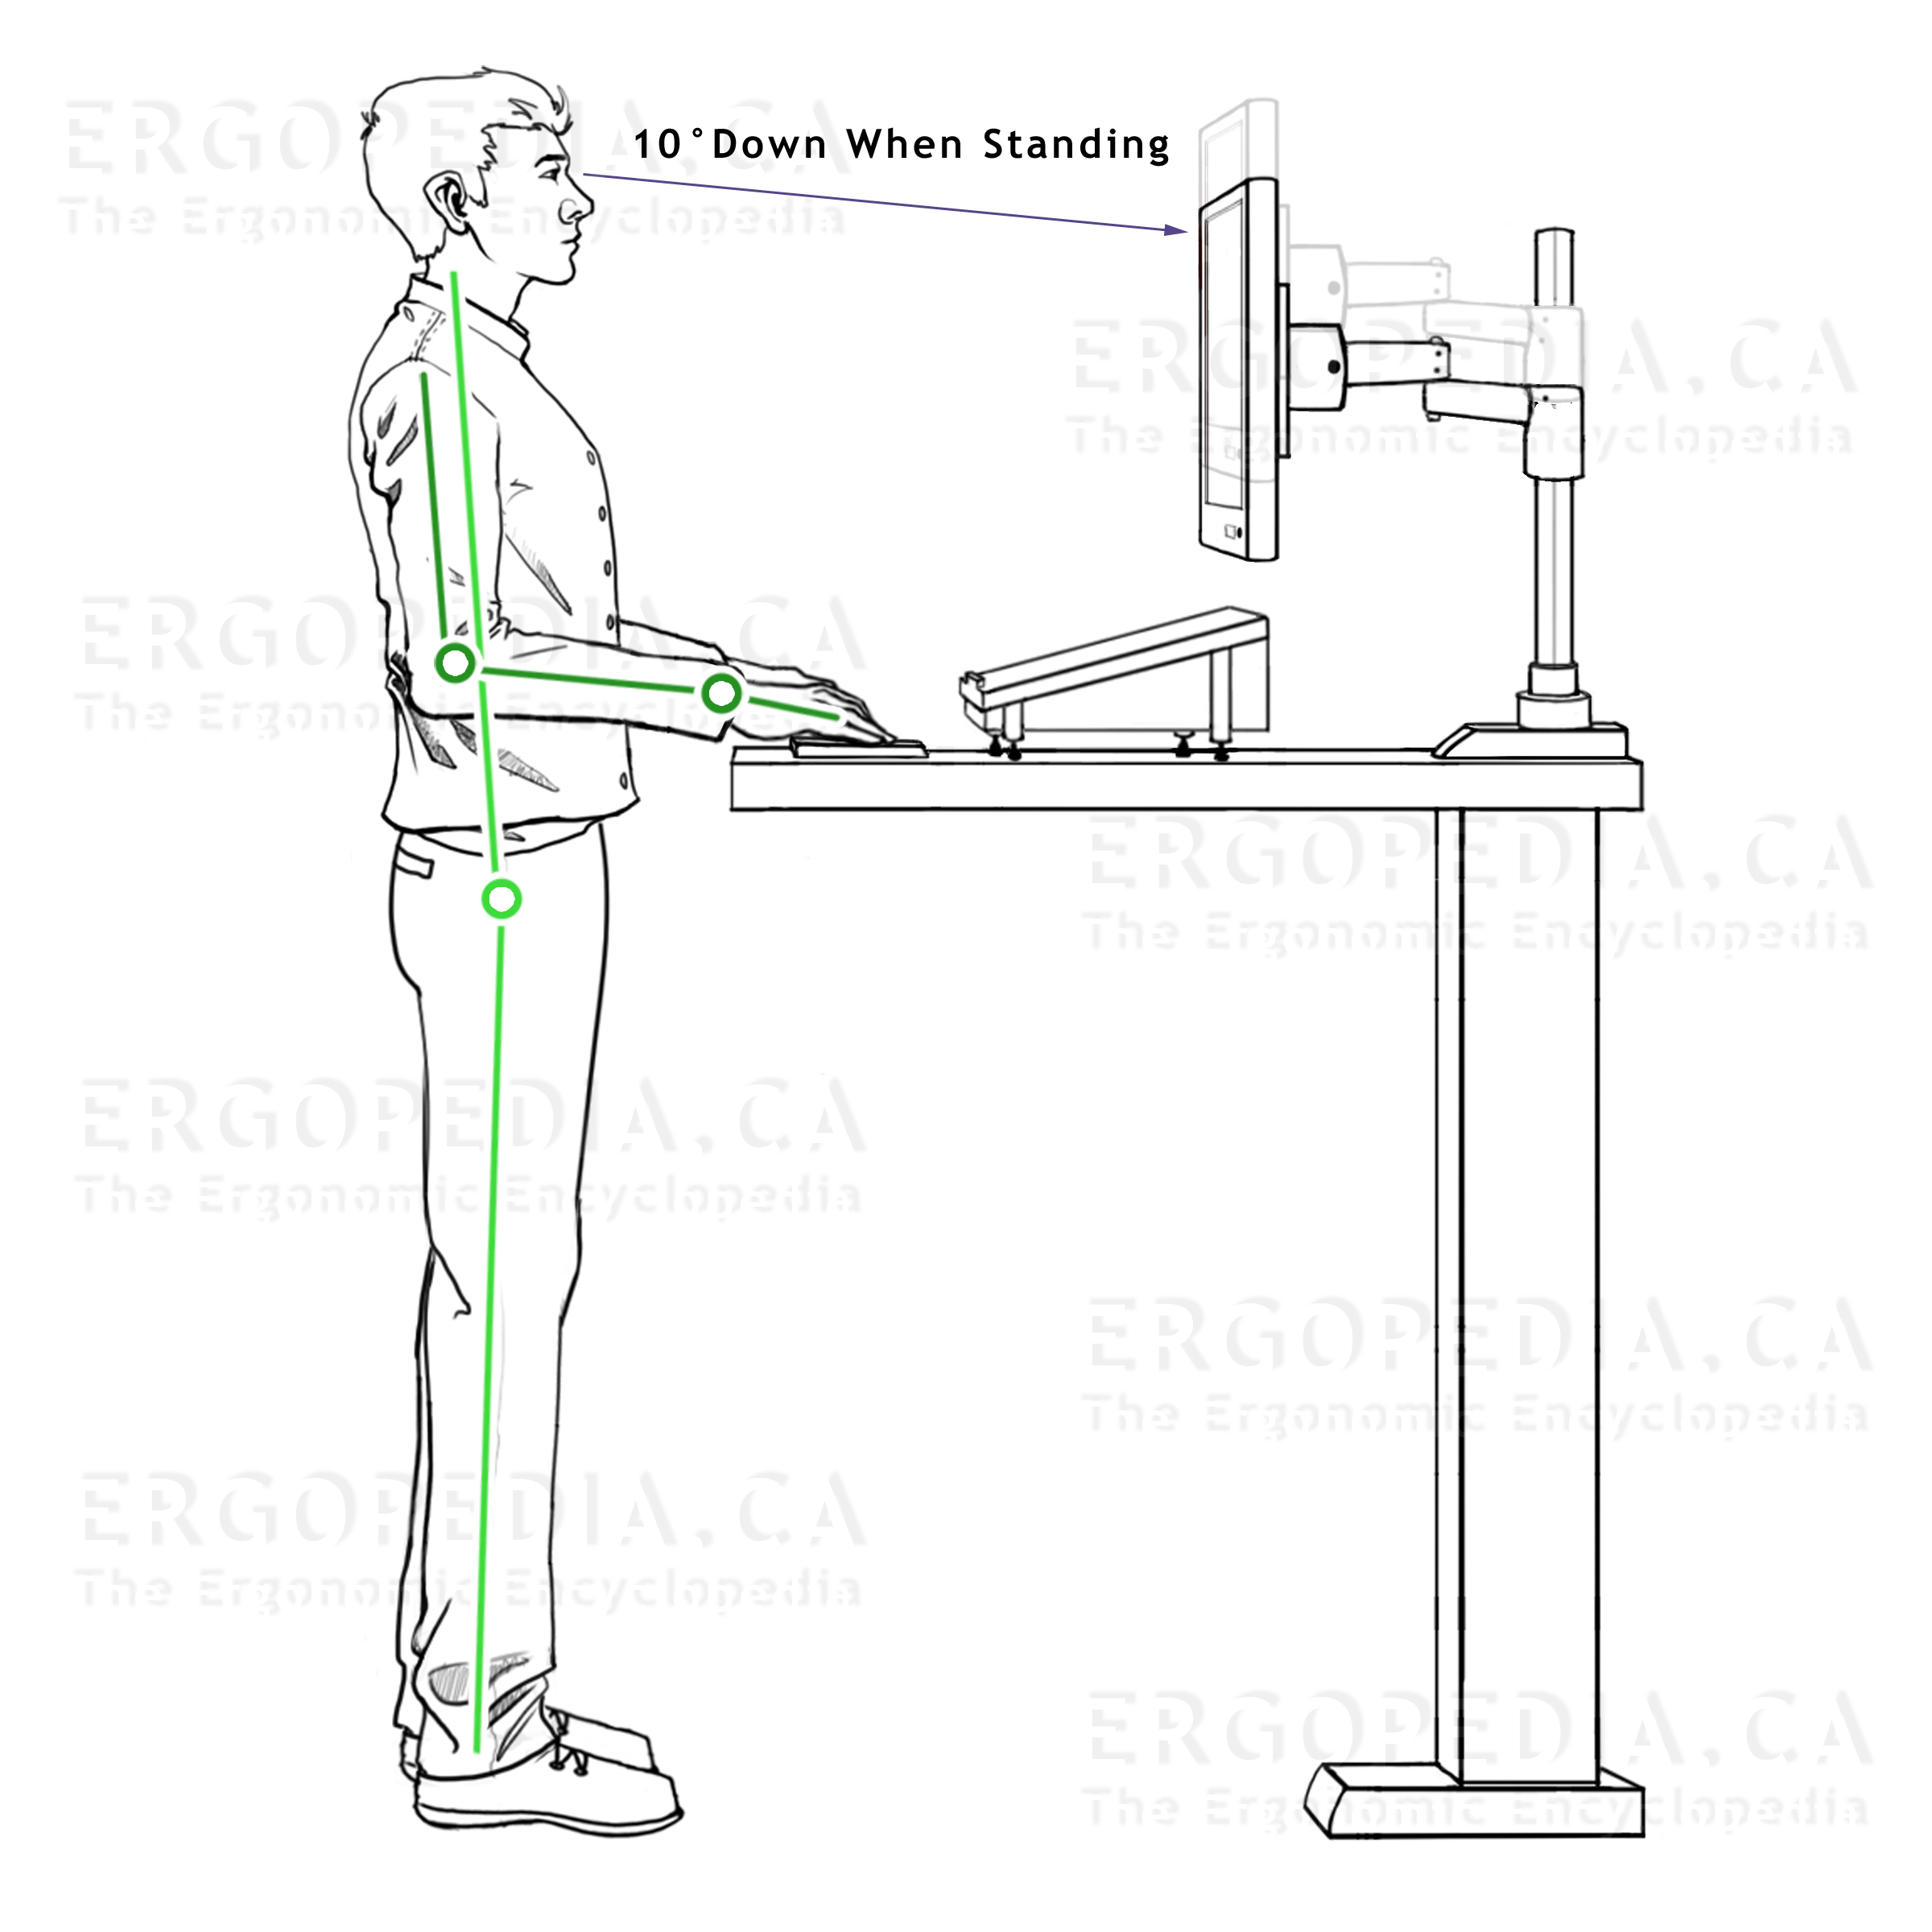 Graphic of Ergonomic Workstation Guidelines When               Standing at a Workstation